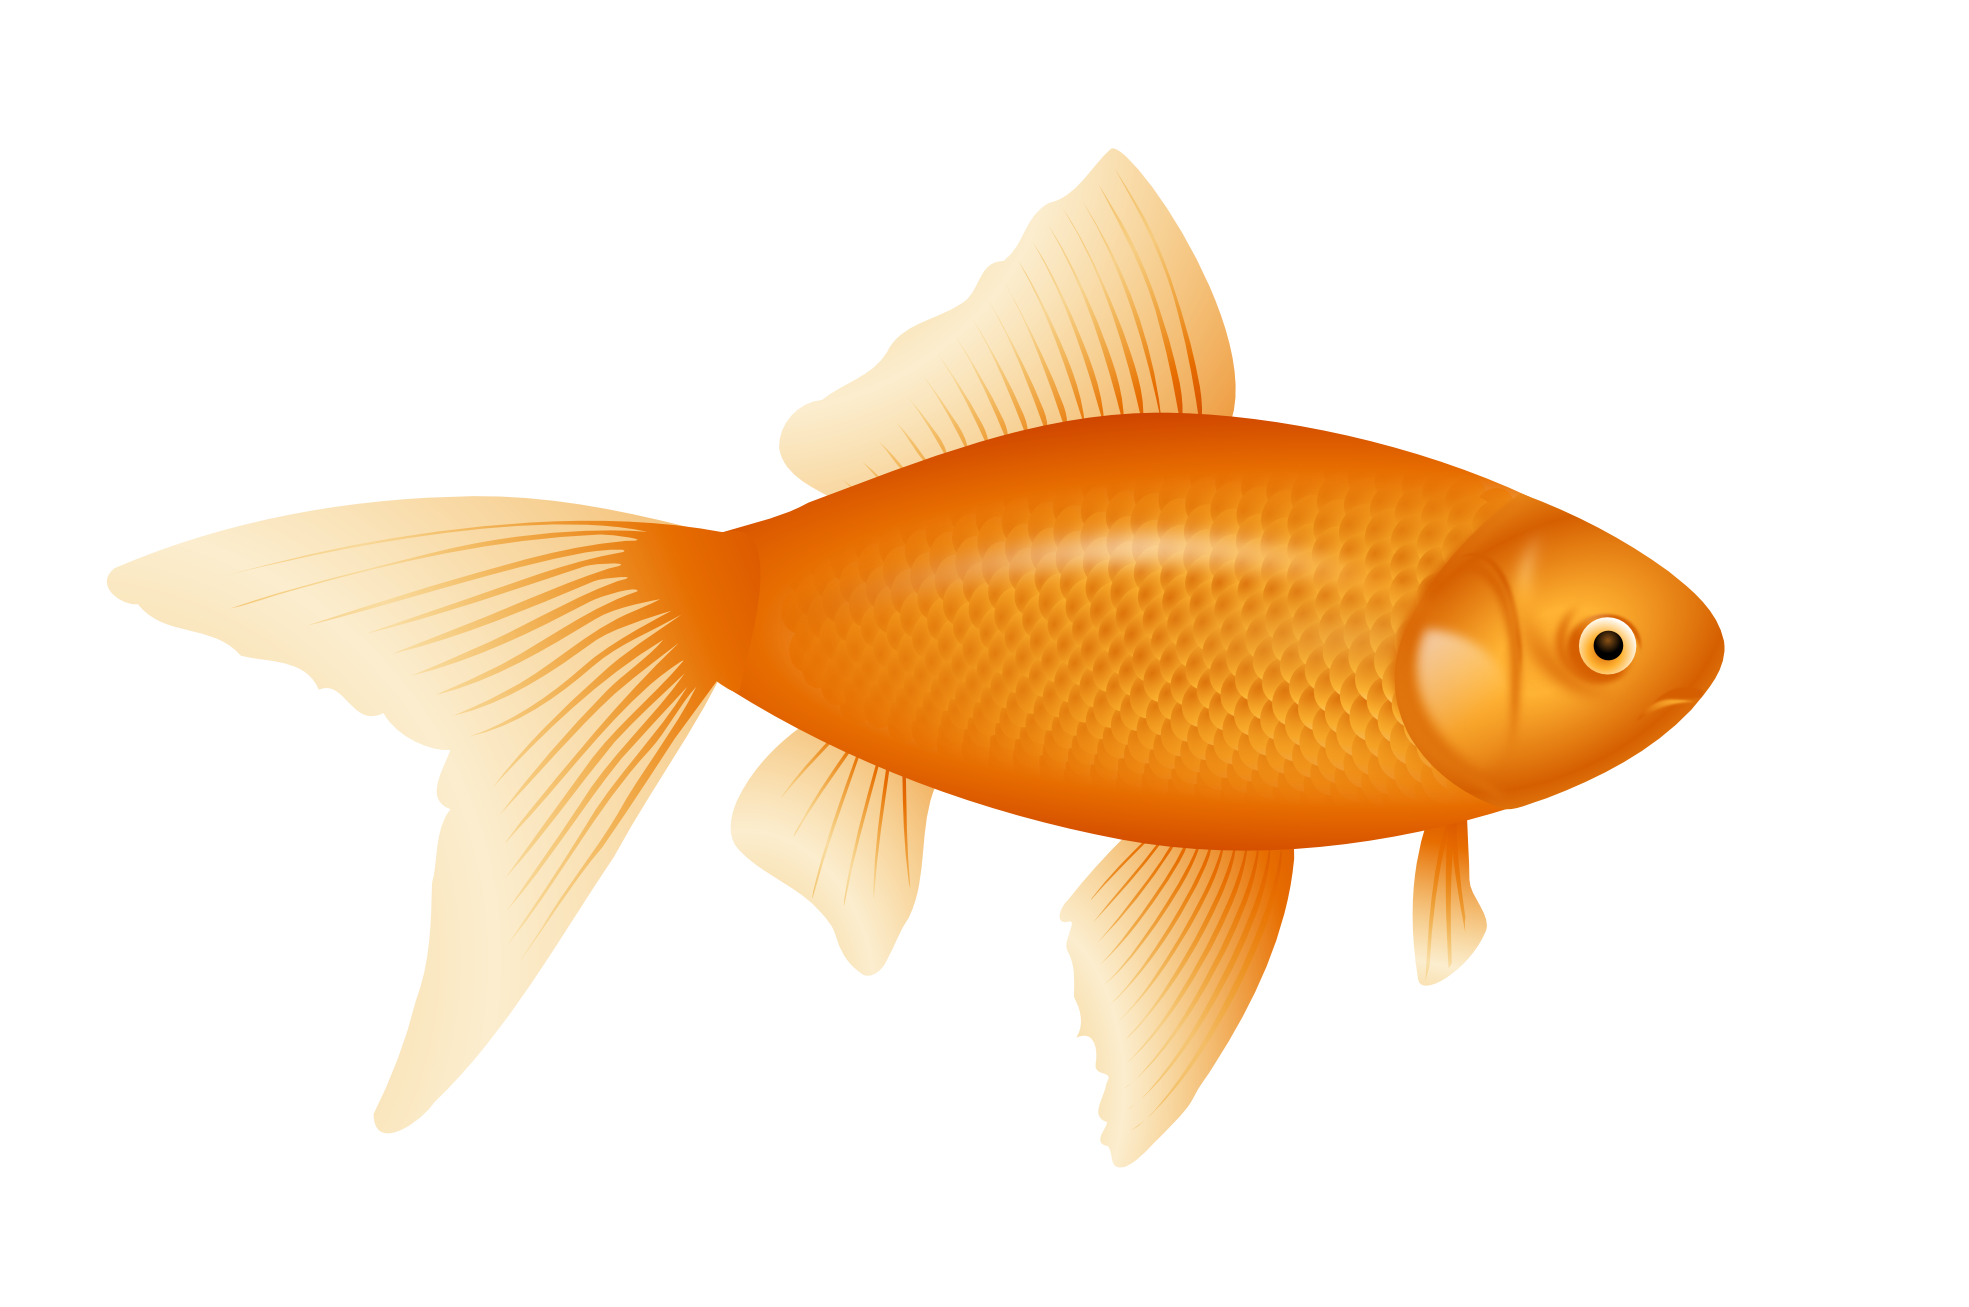 Real fish clipart jpg black and white stock Image Of A Fish Group (69+) jpg black and white stock